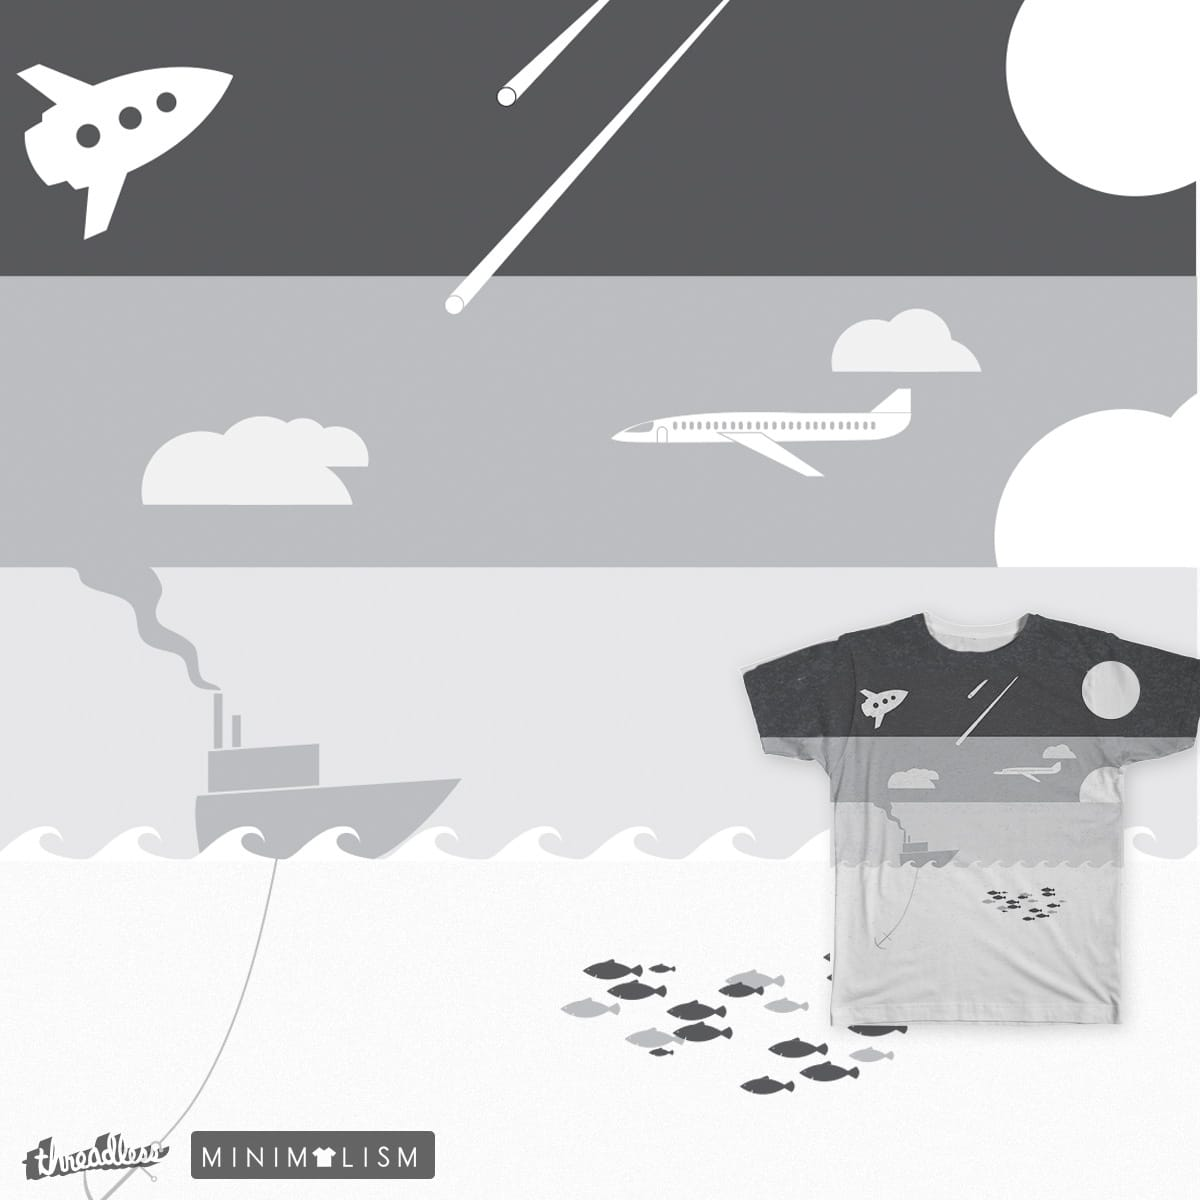 Altitude by Al_bee on Threadless